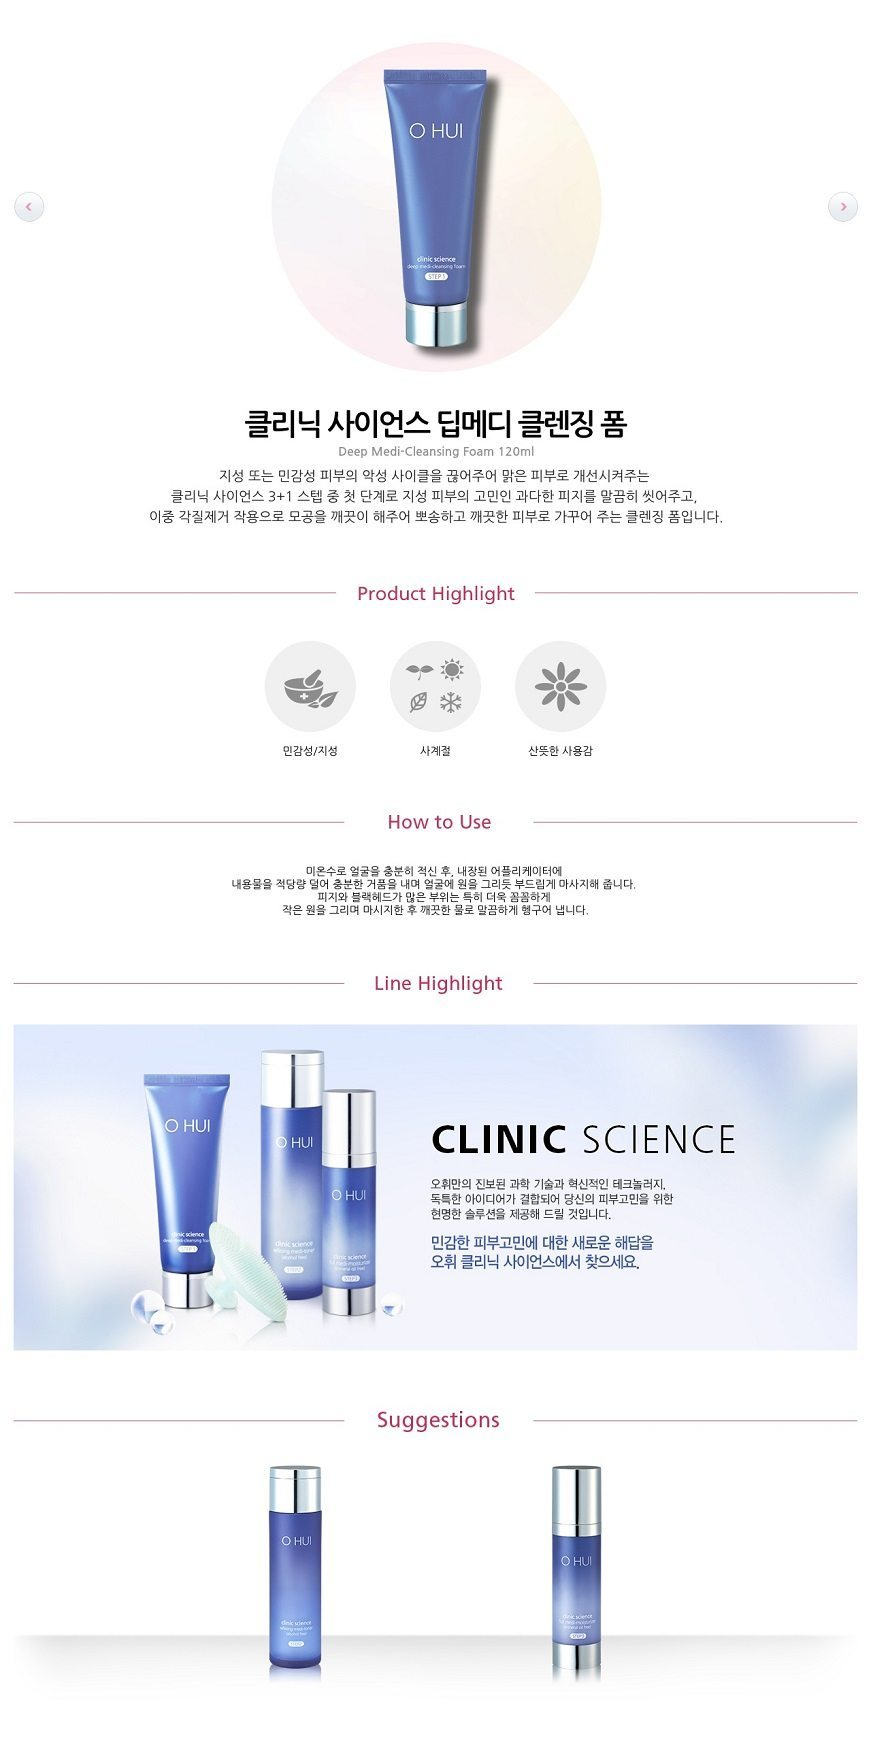 OHUI Clinic Science Deep Medi Cleansing Foam 120ml malaysia singapore indonesia